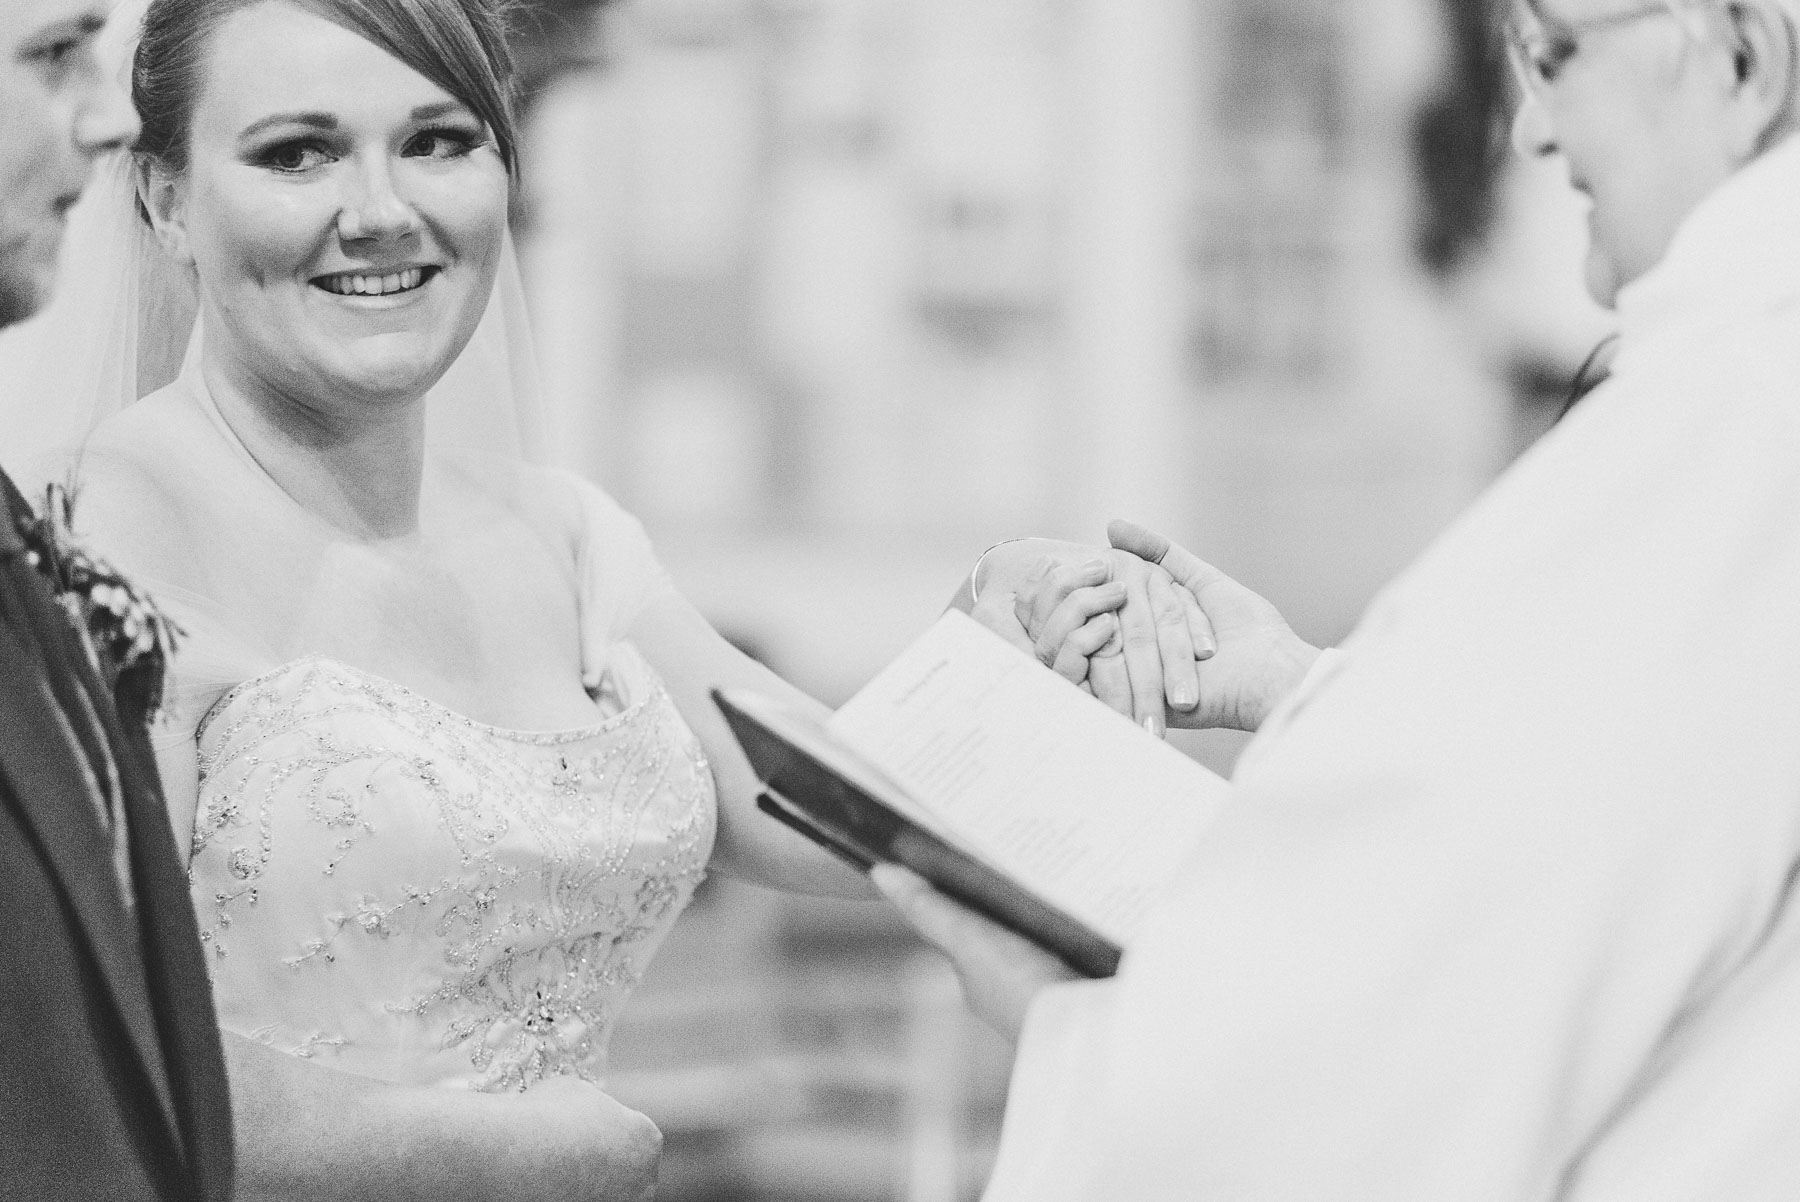 Bride looks at groom during service